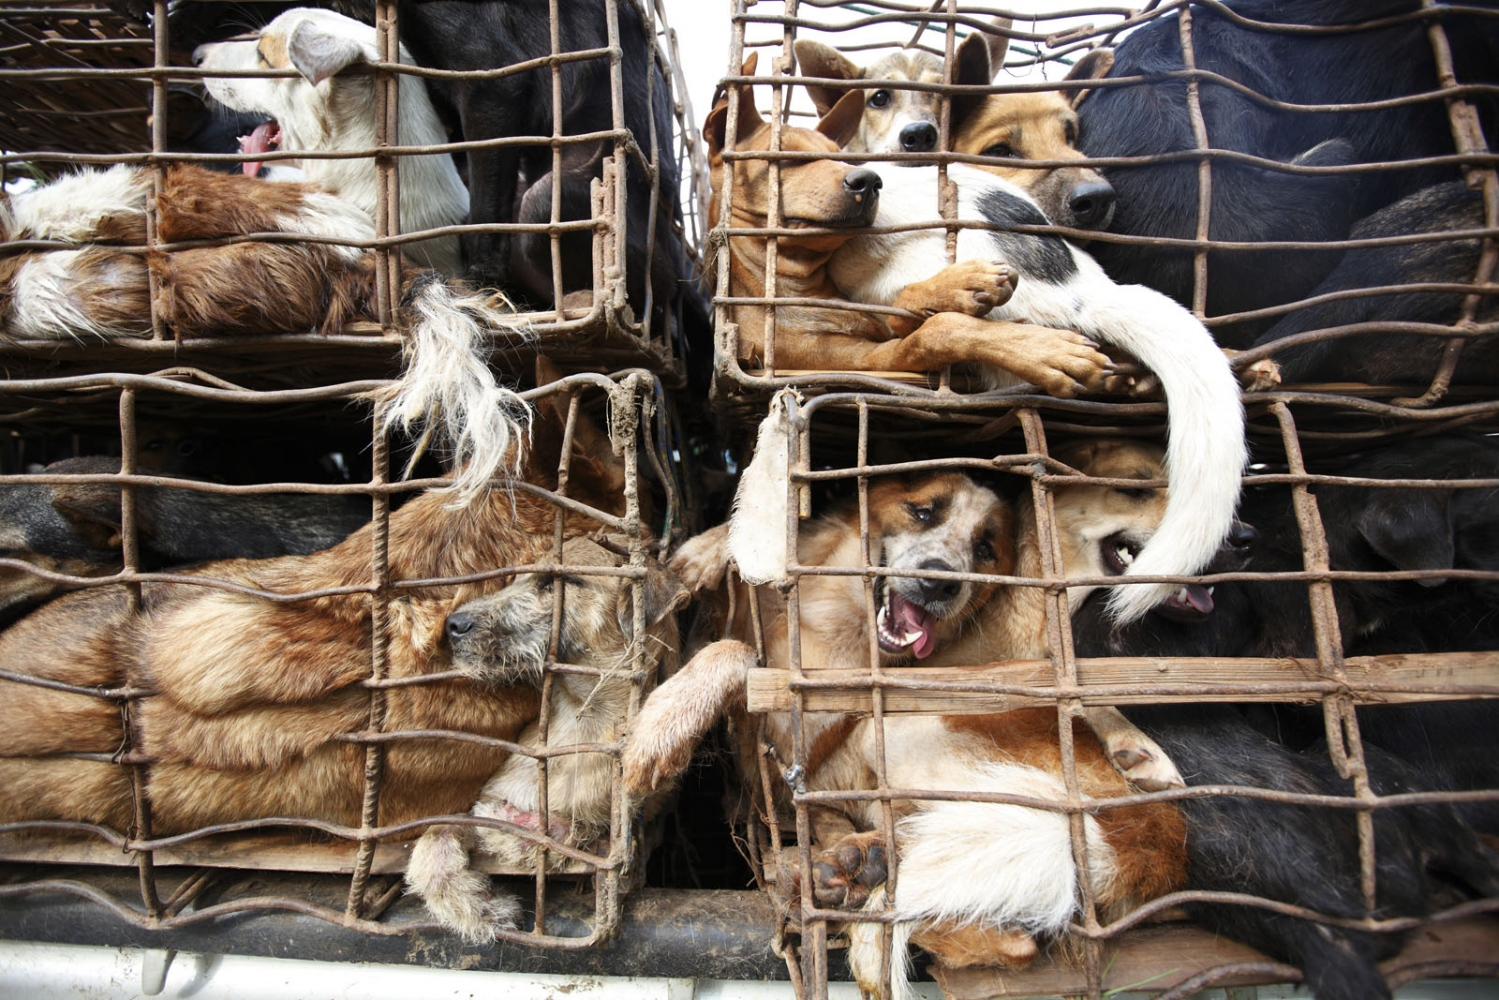 Dogs crammed in to metal cages, some up to 15 at a time, after being caught by the police. The perpetrators managed to escape. Nakhon Phanom, Thailand